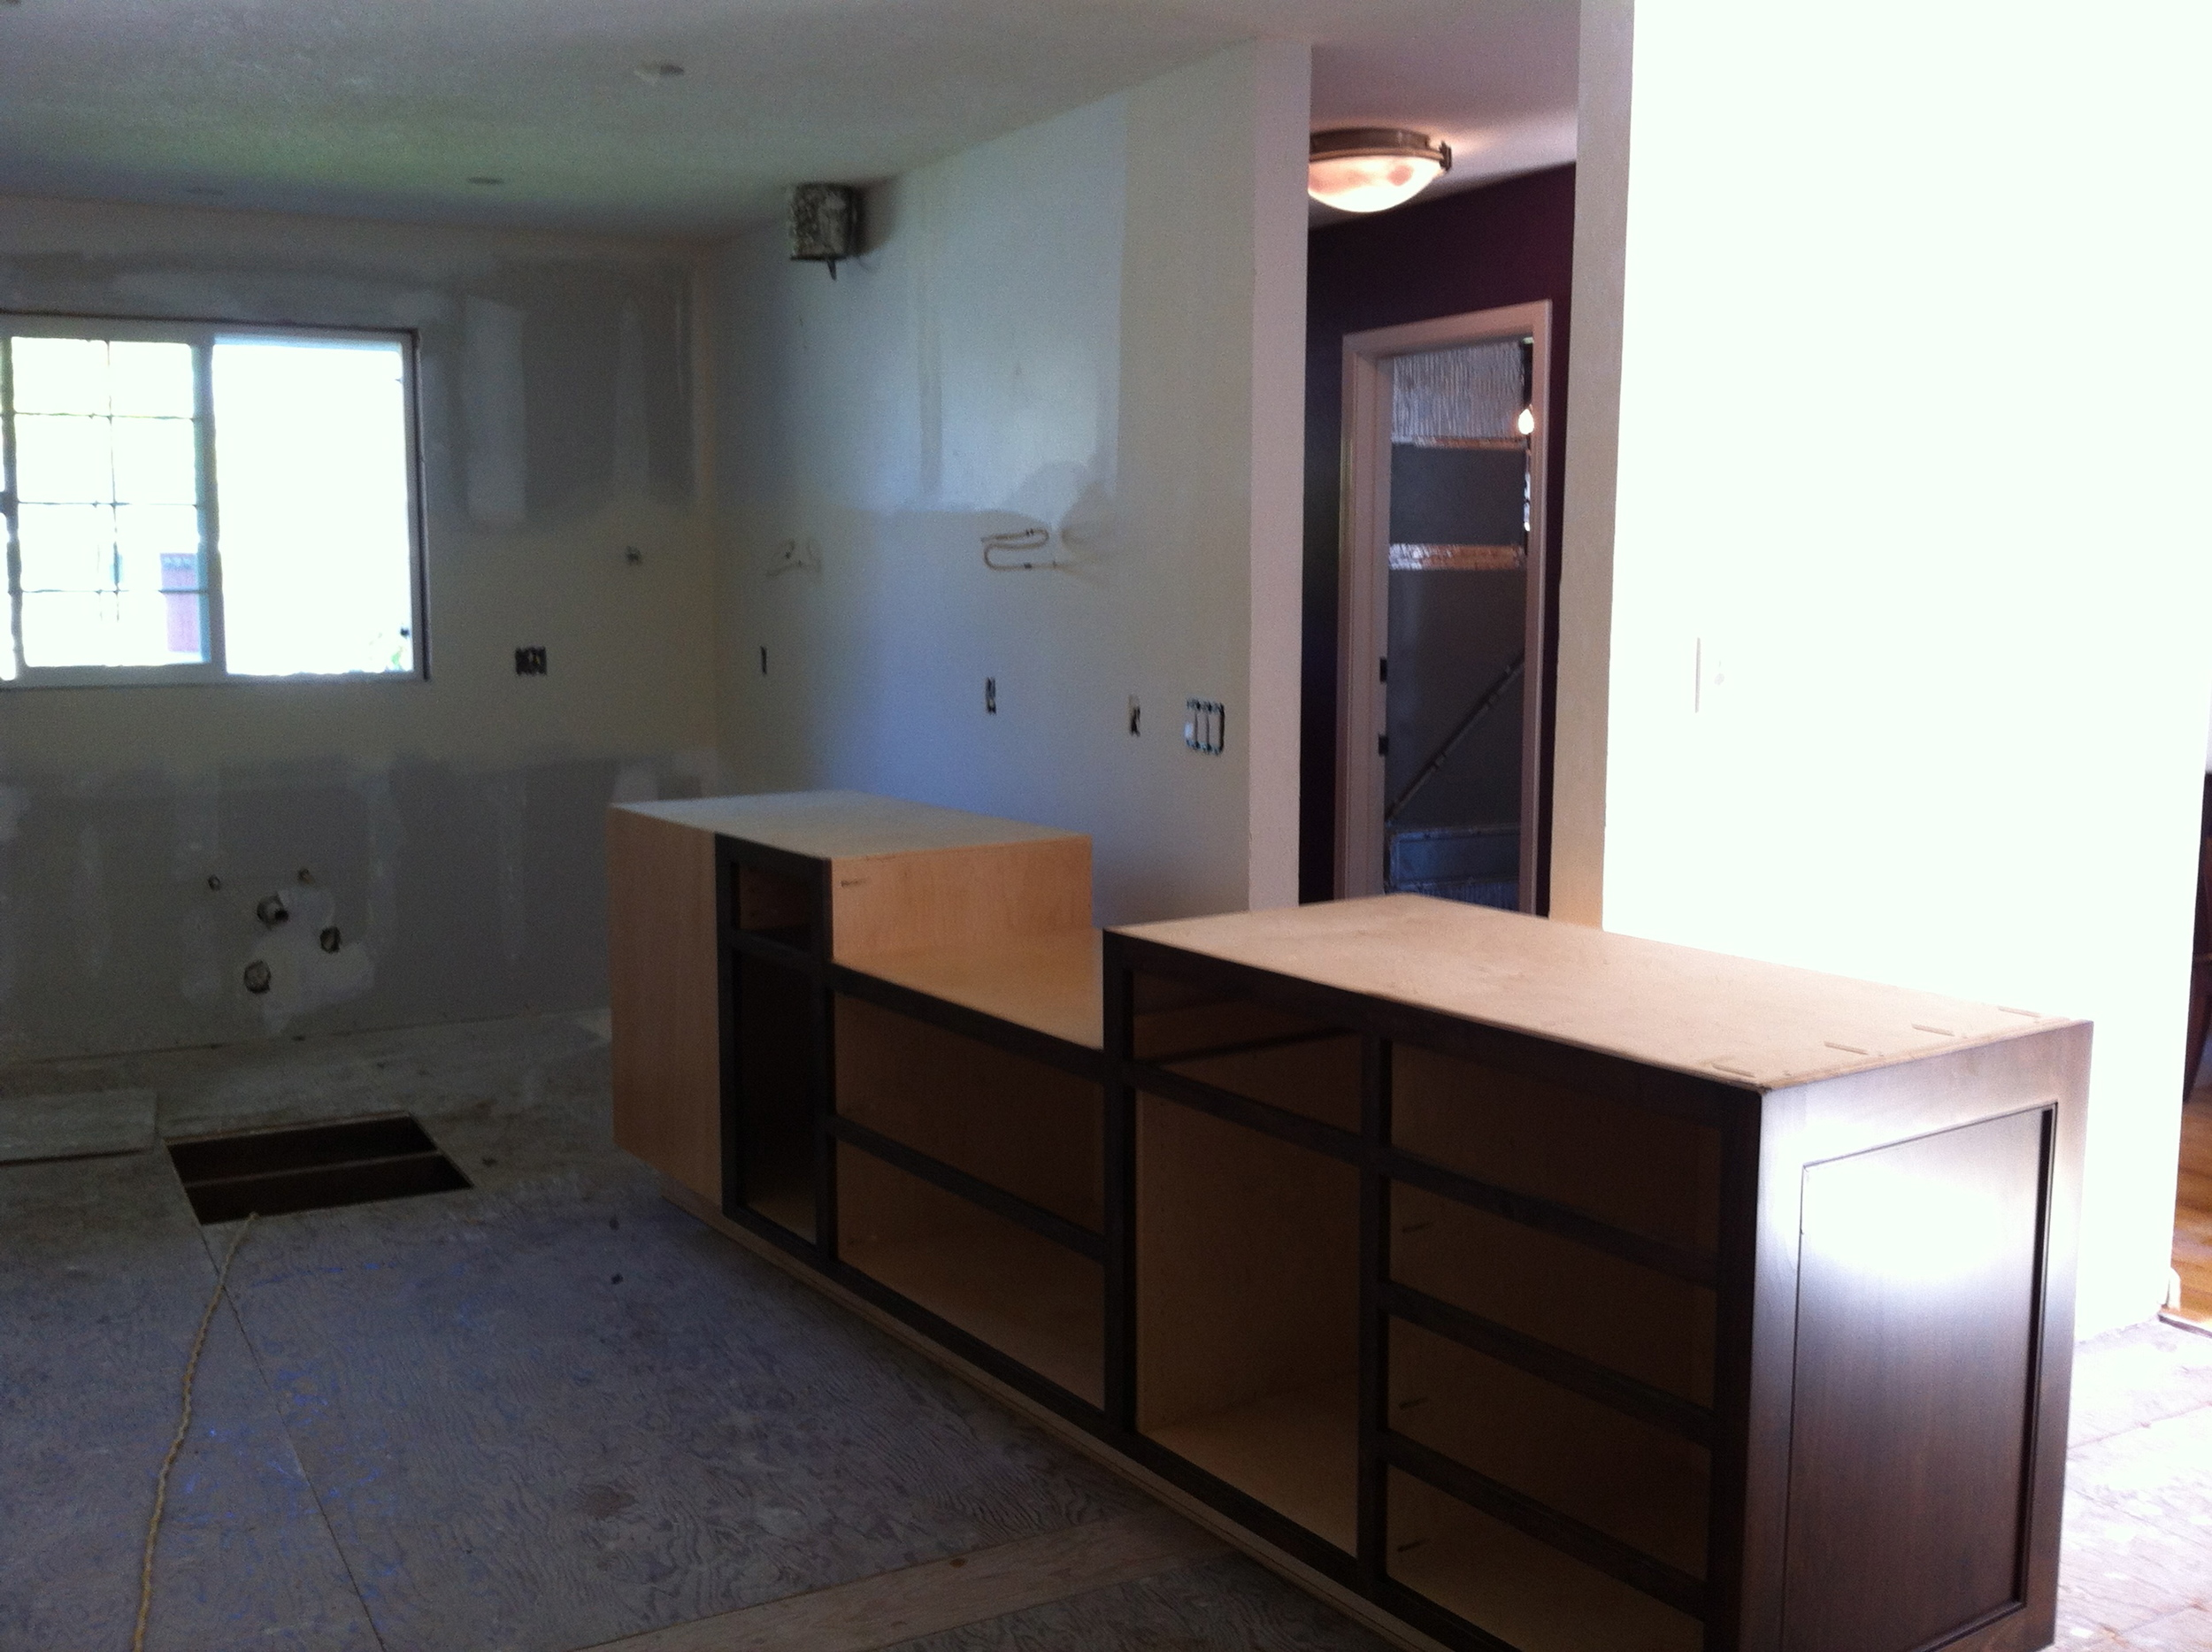 First Section of Cabinets